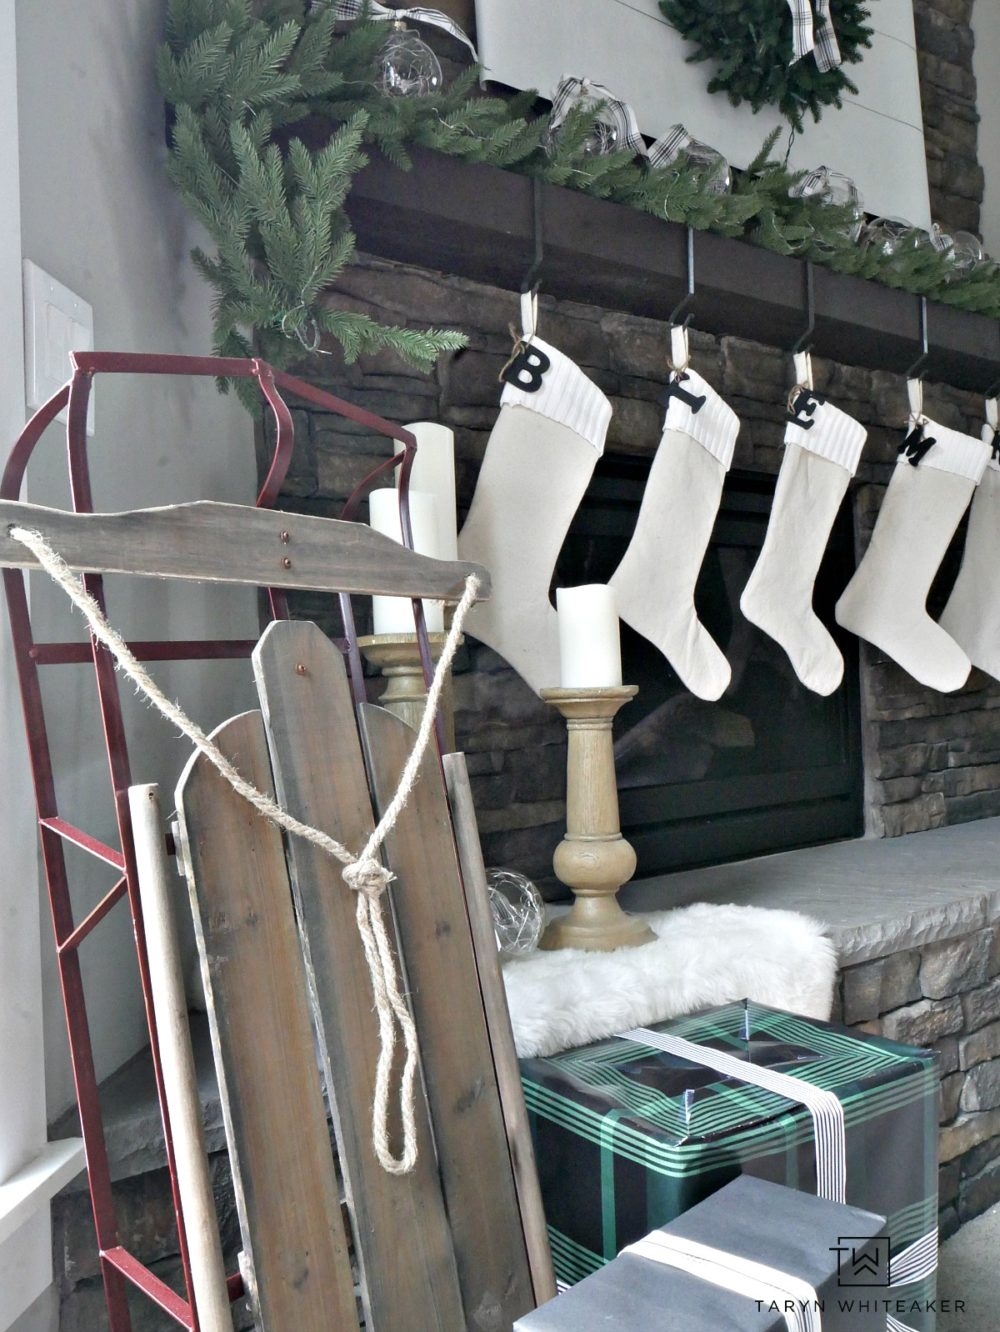 Place a vintage sled near the fireplace to give it a rustic and classic look for the holidays